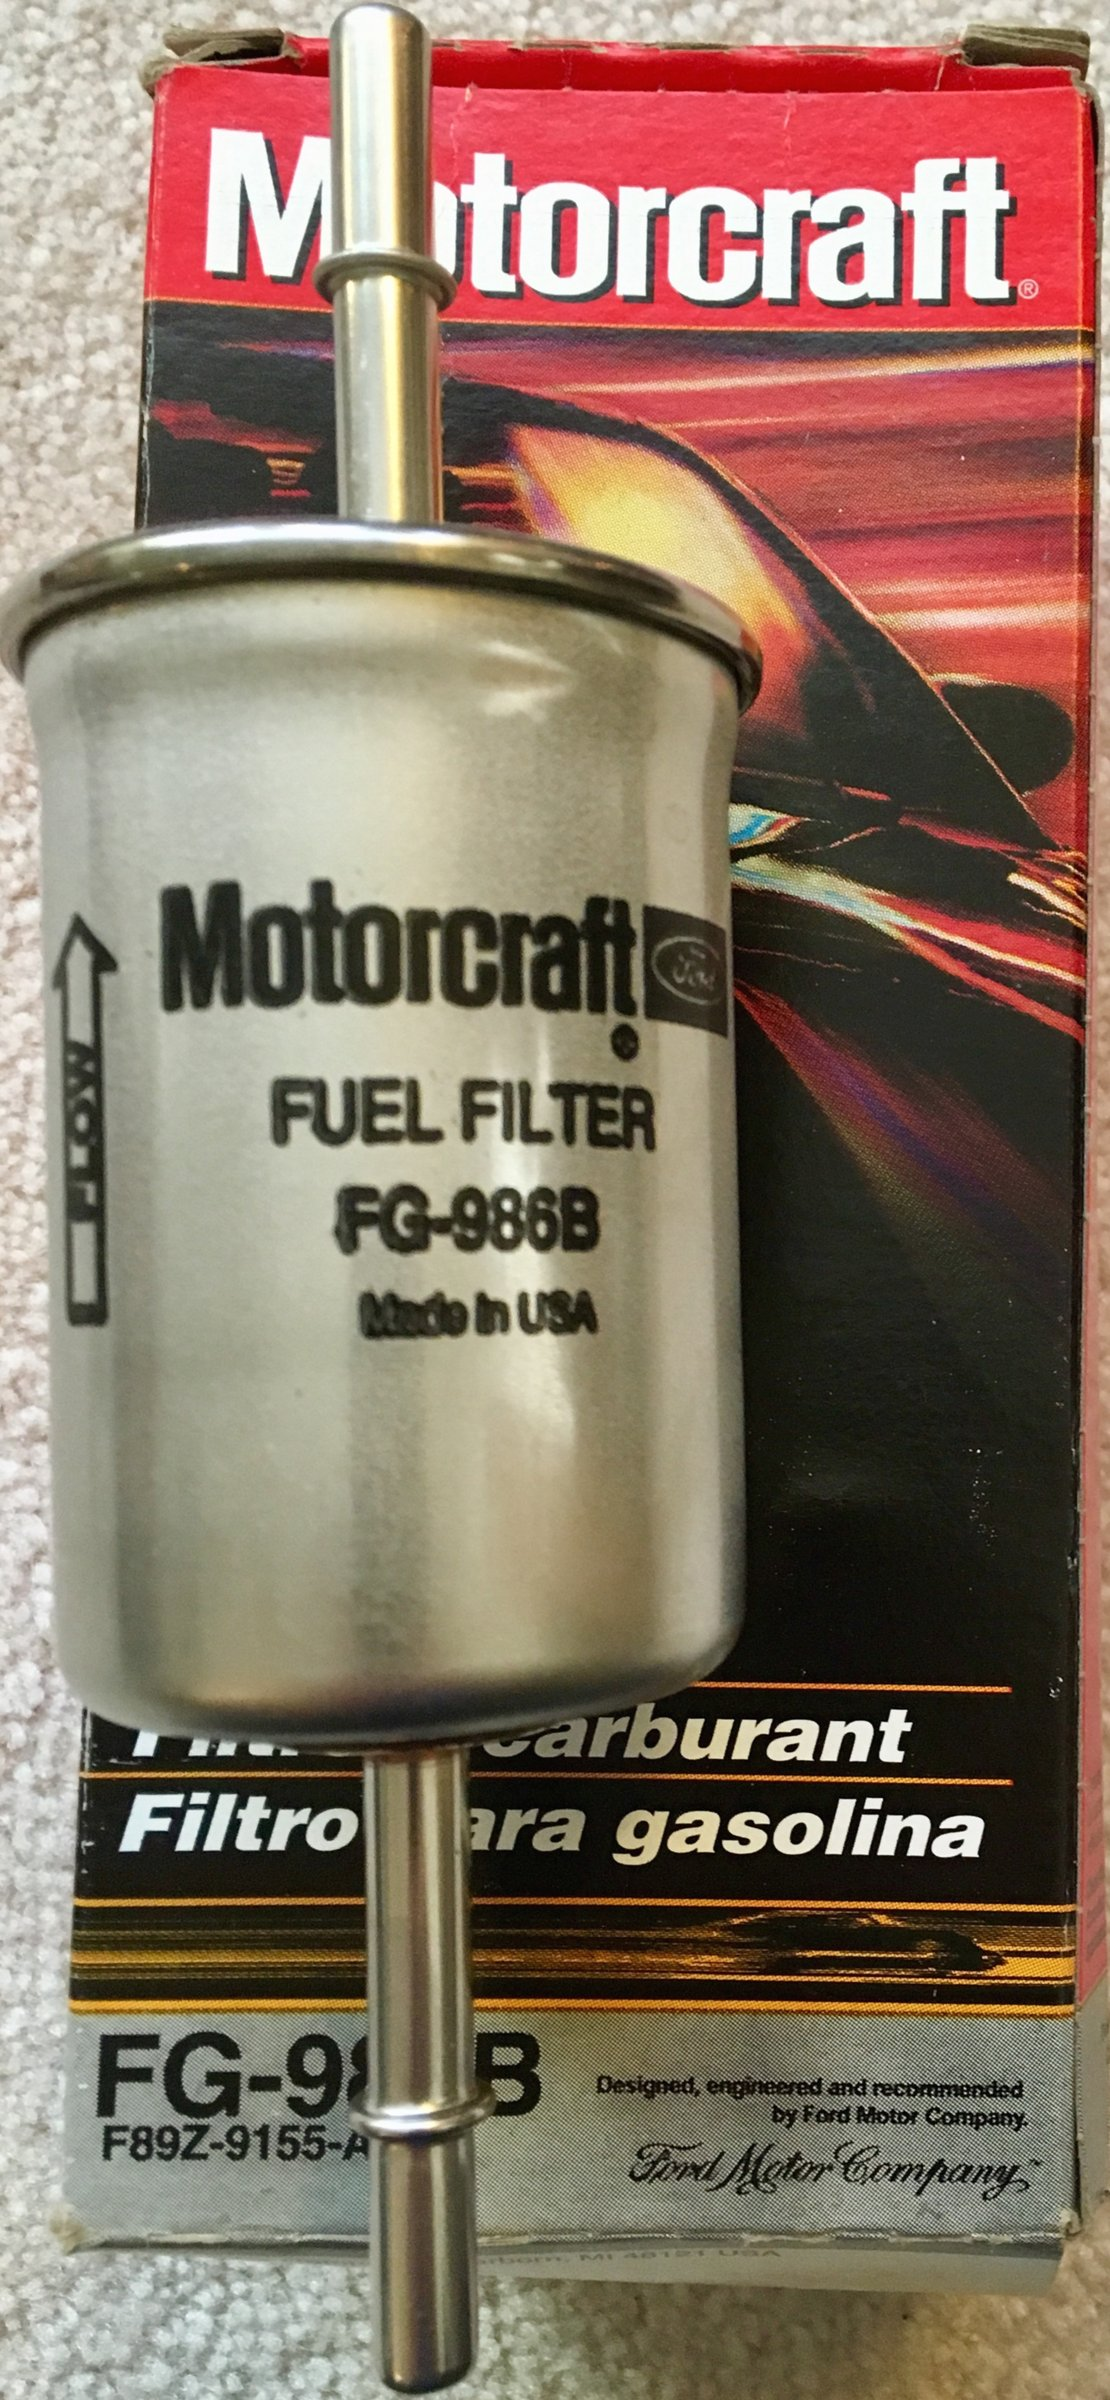 Sold New Ford Motorcraft Fuel Filter Part Number Fg 986b